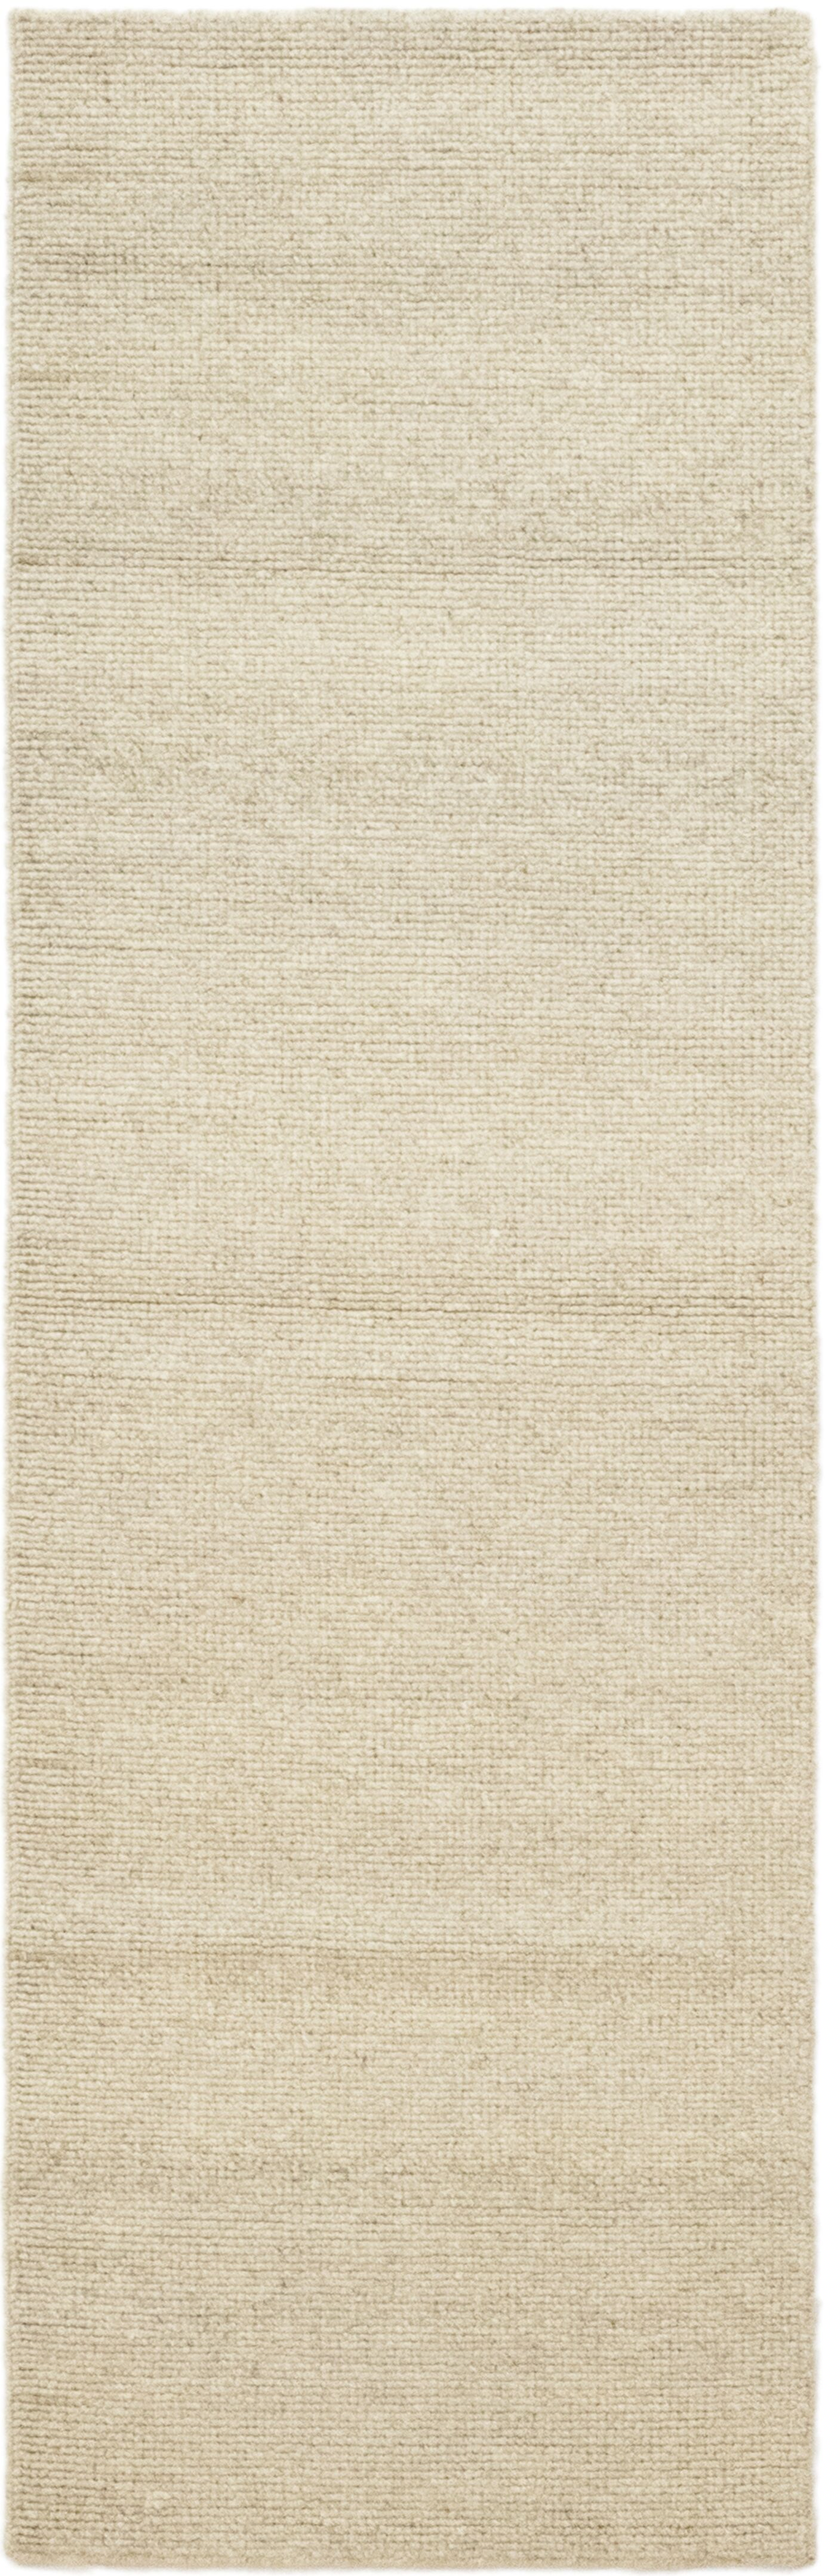 One-of-a-Kind Montreux Hand-Knotted Wool Beige Indoor Area Rug